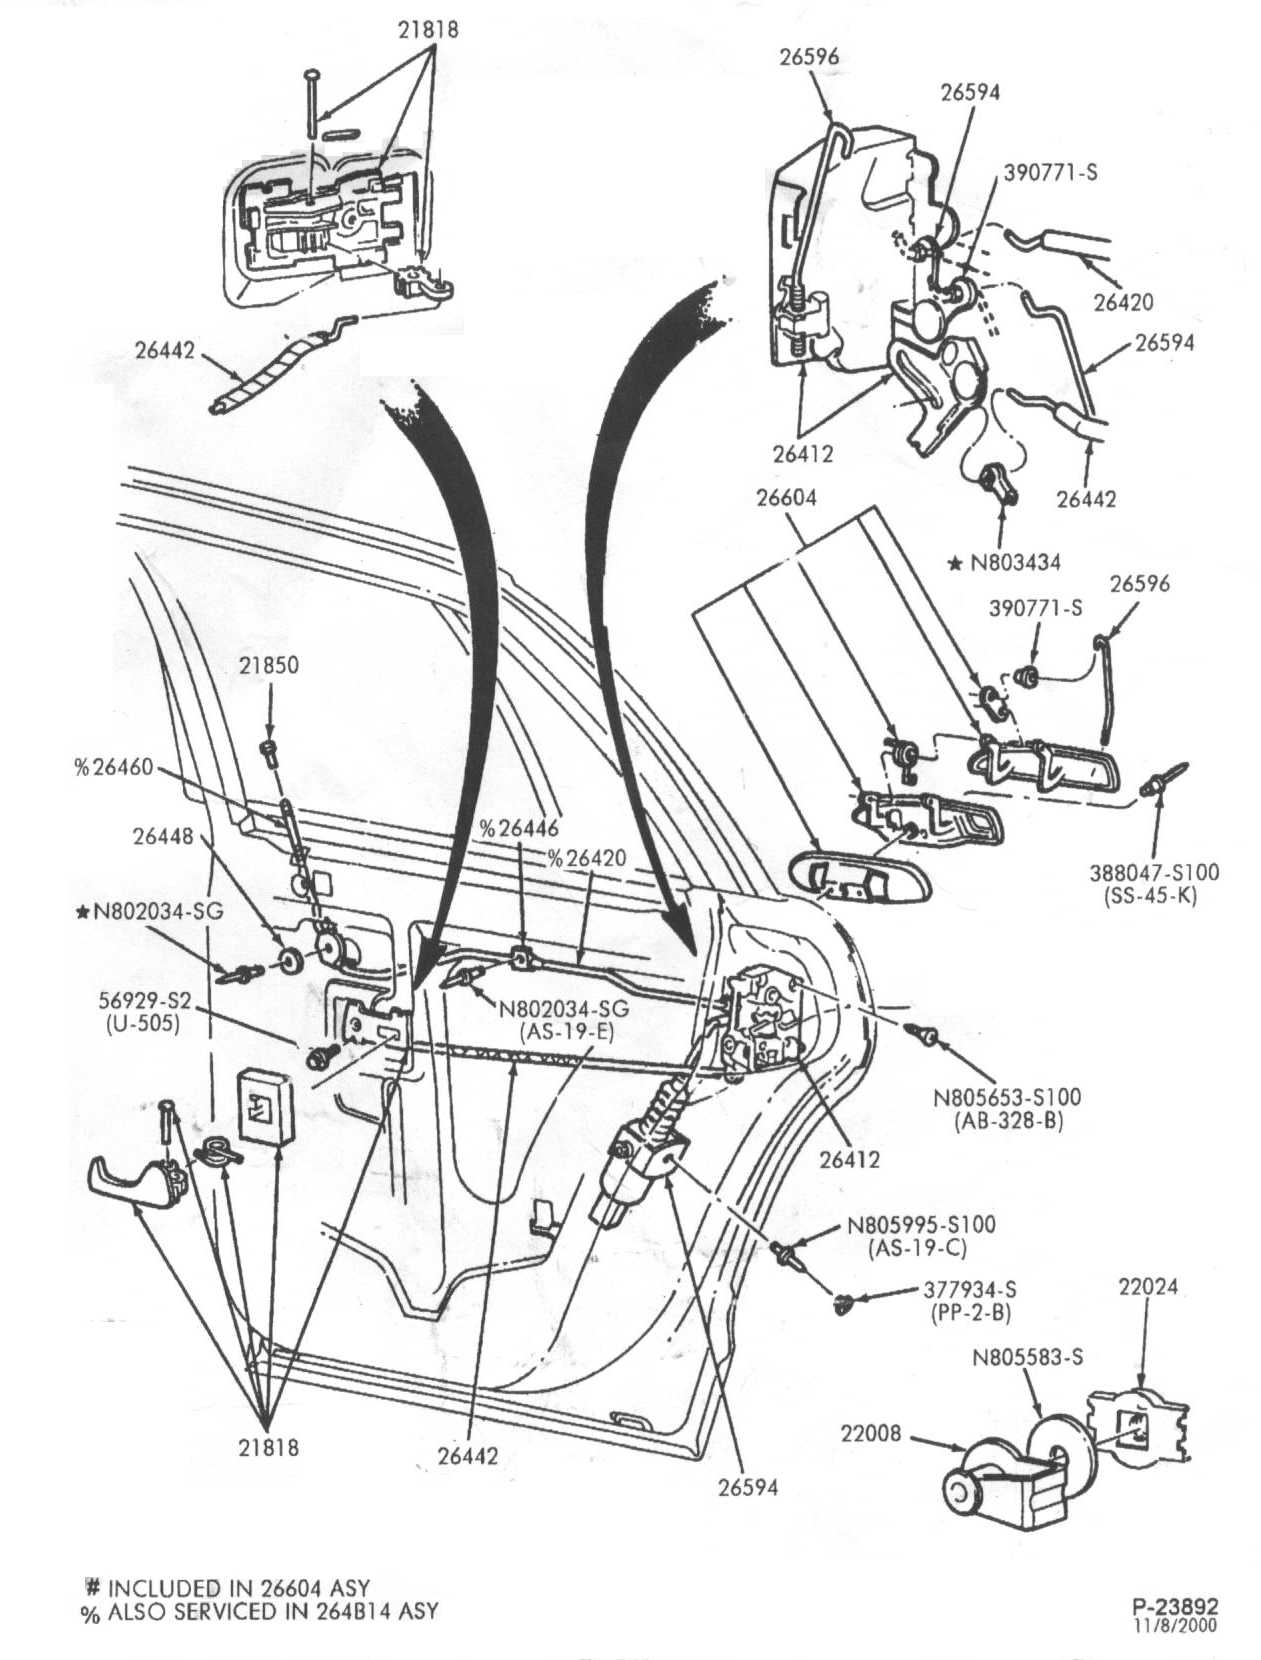 Wiring Diagram Interceptor Suv Ford Crown Victoria Police Door Best Secret Vic Power Lock Harness 35 Ltd